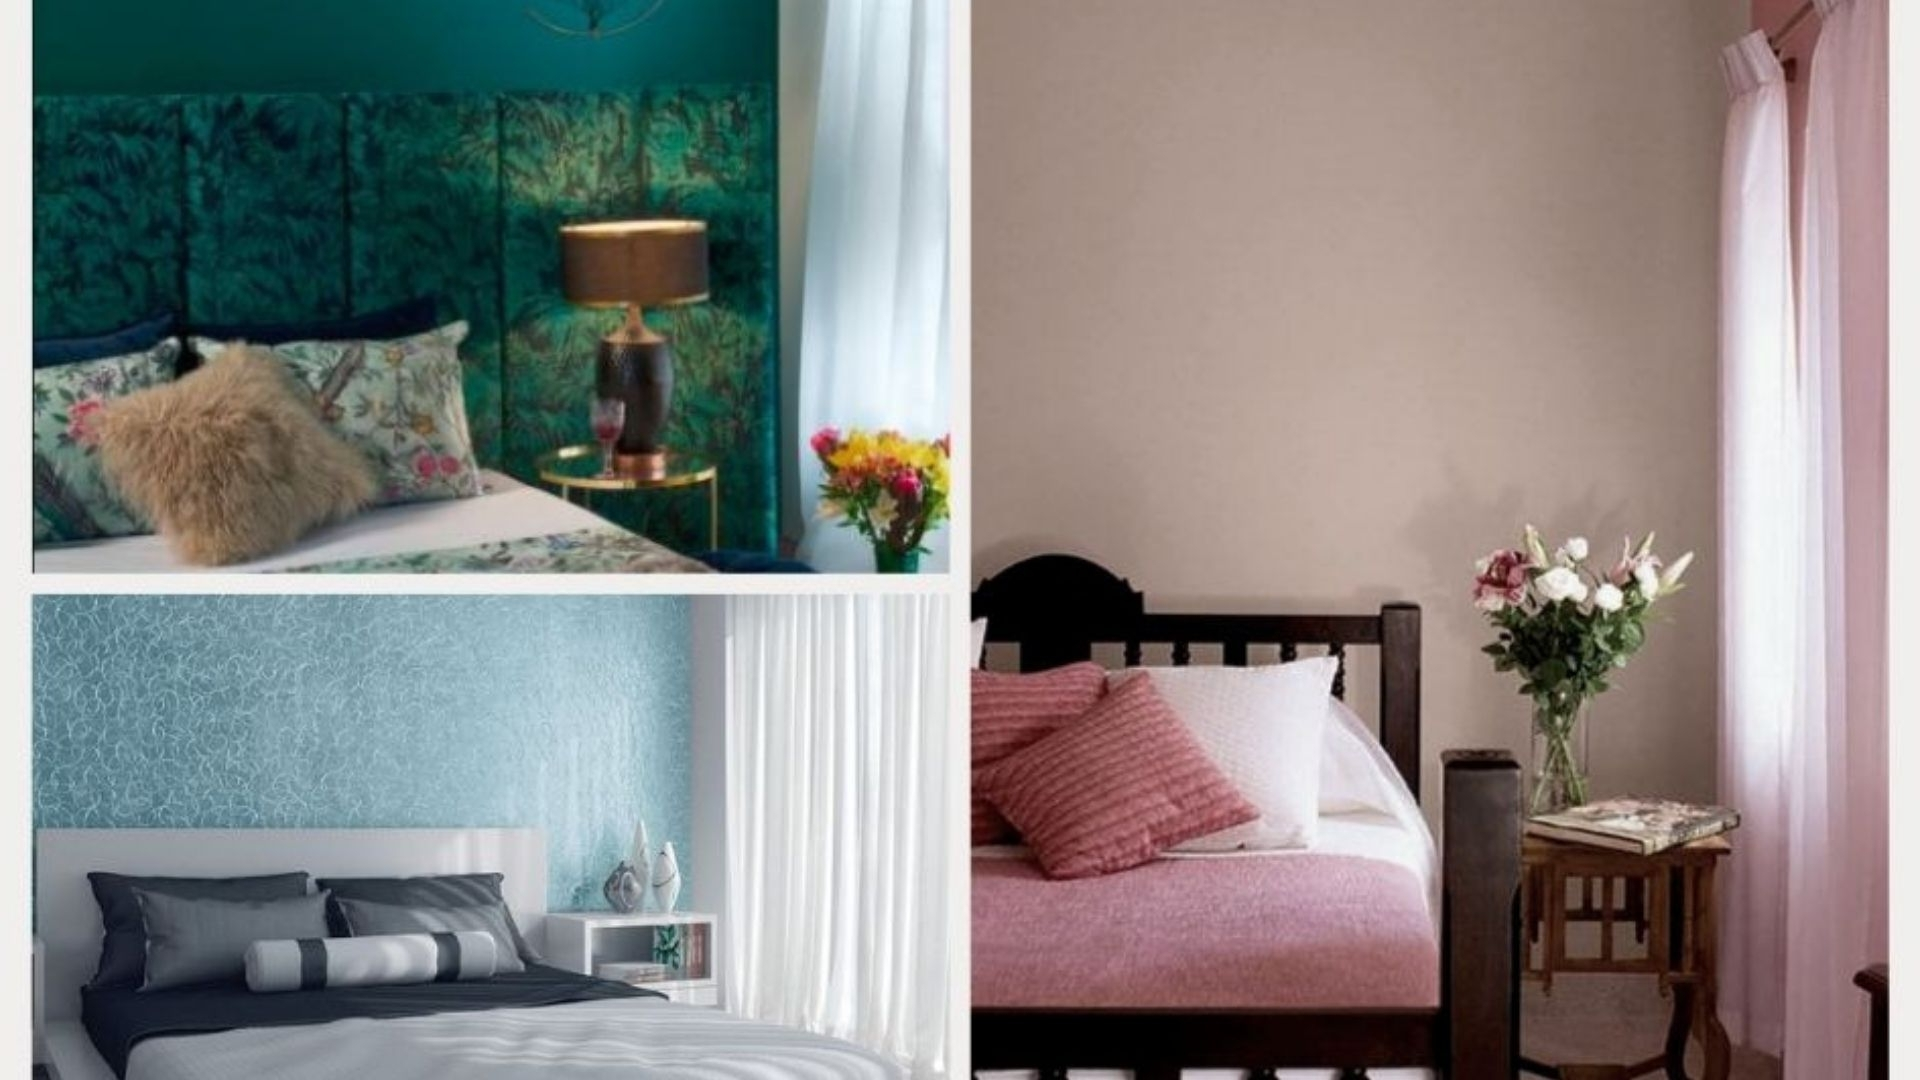 10 Asian Paints Colours For Bedrooms You Will Love Too 20+ Living Room Asian Paints Design Inspirations